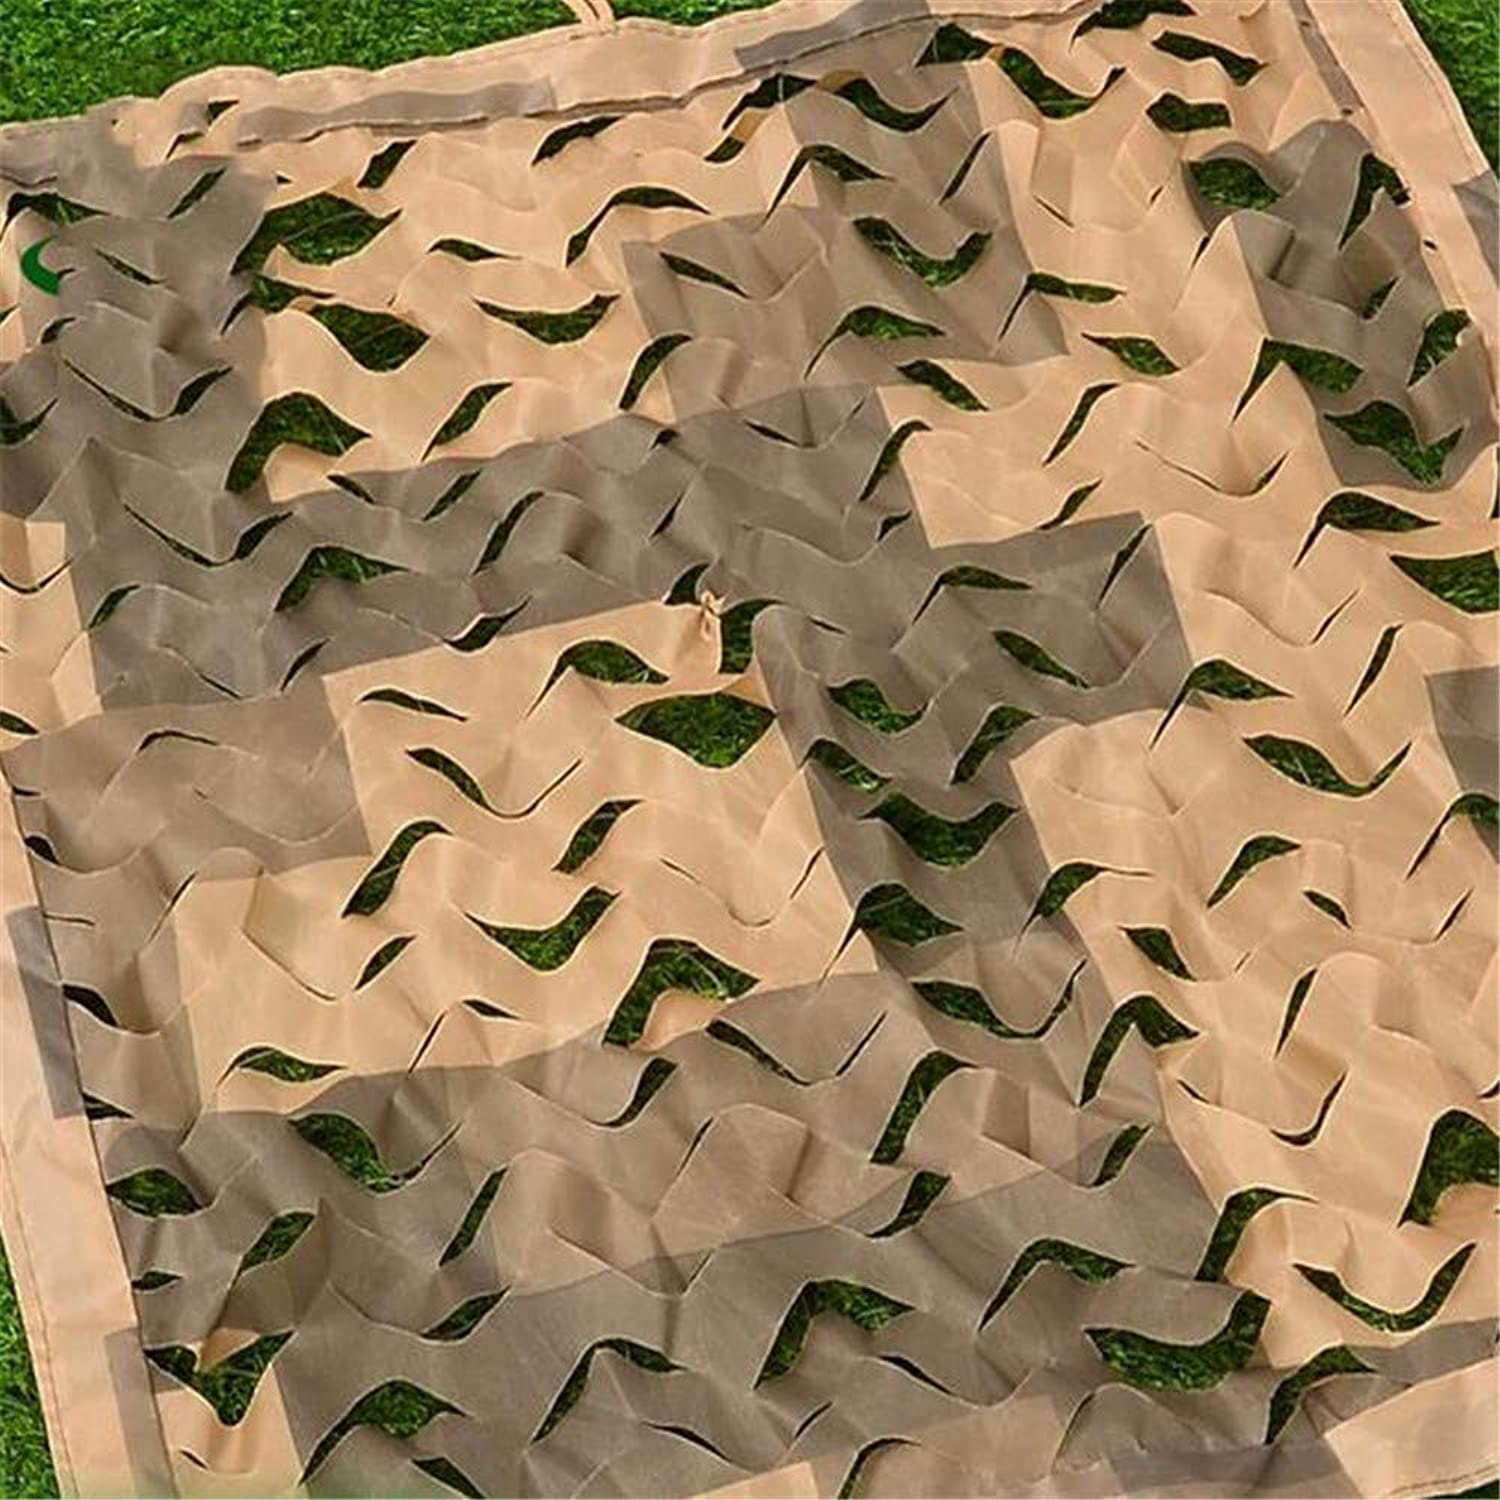 Desert Double Edging Camouflage Net Outdoor Air Defense Camouflage Net Concealed Cover Sunscreen Block Net